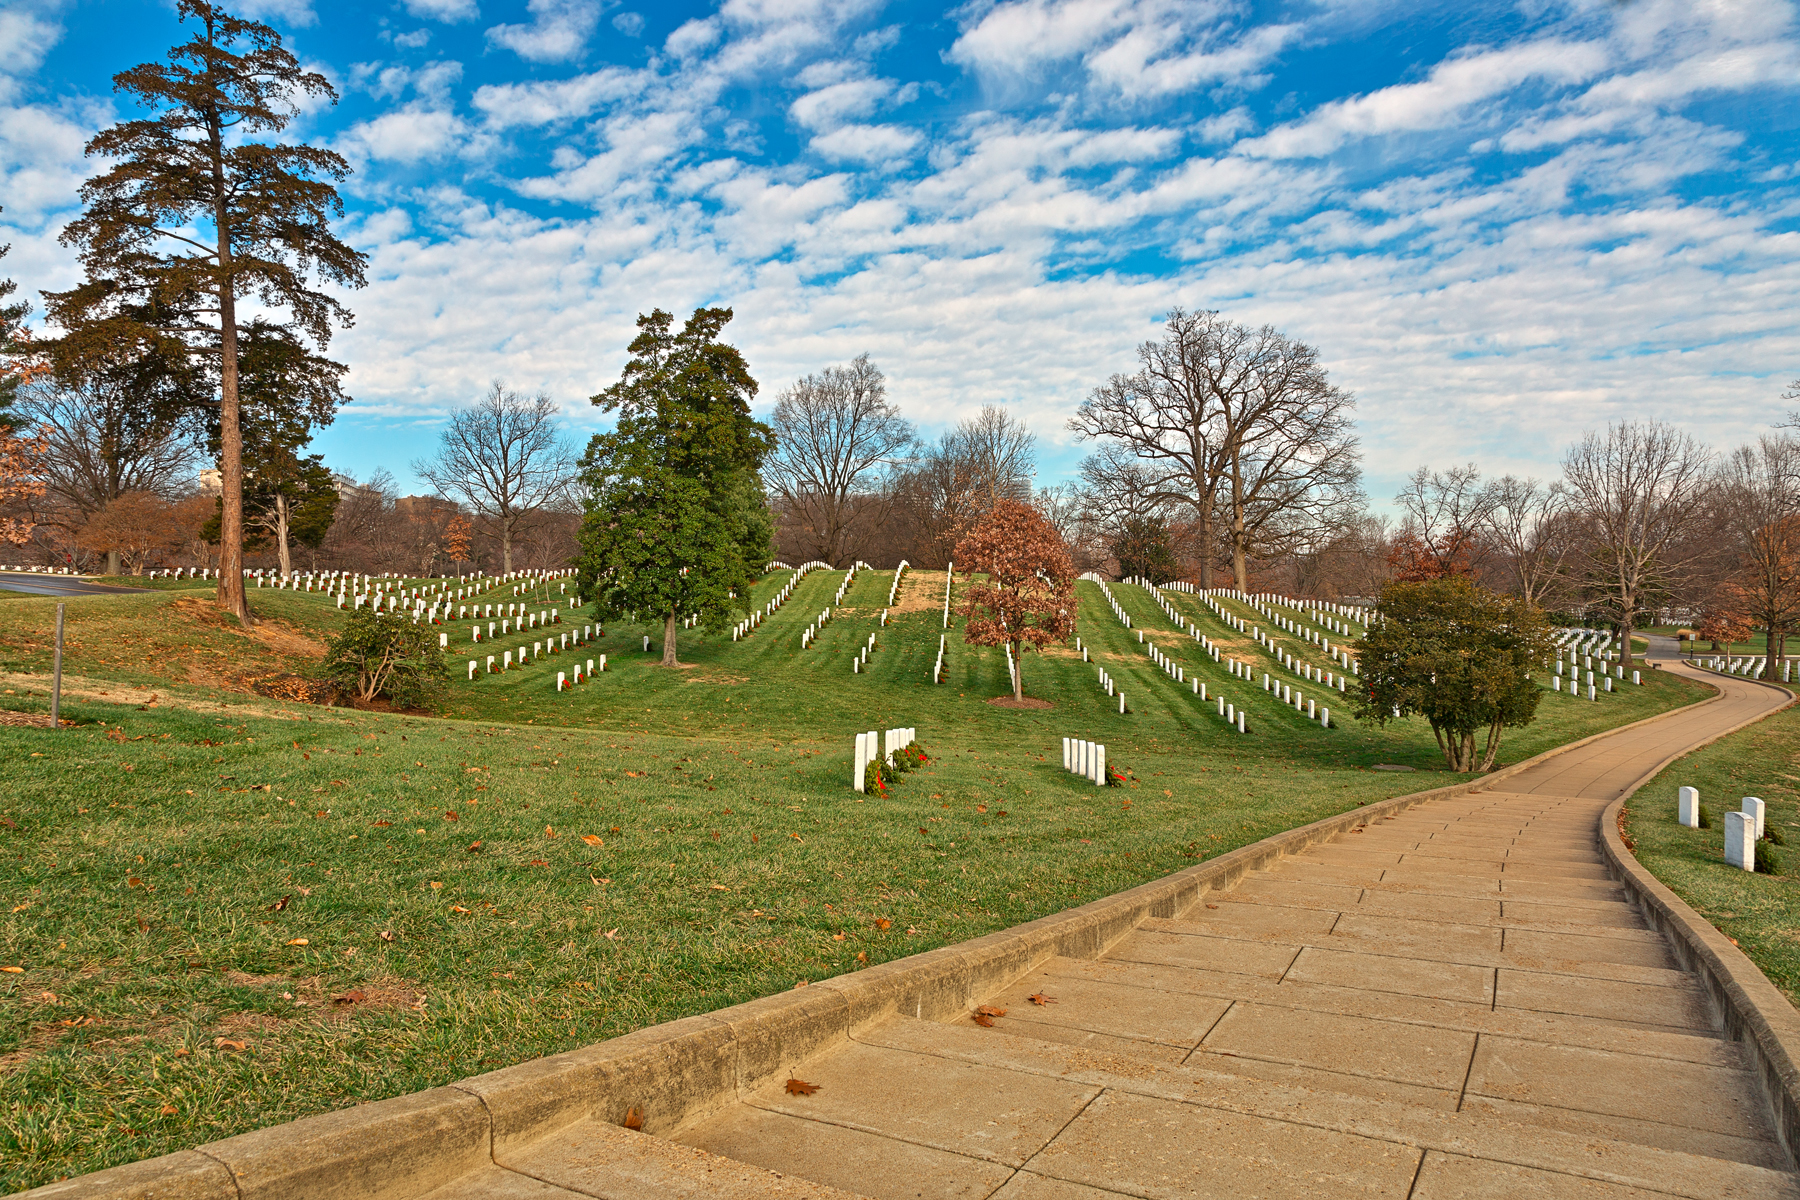 Arlington national cemetery - hdr photo